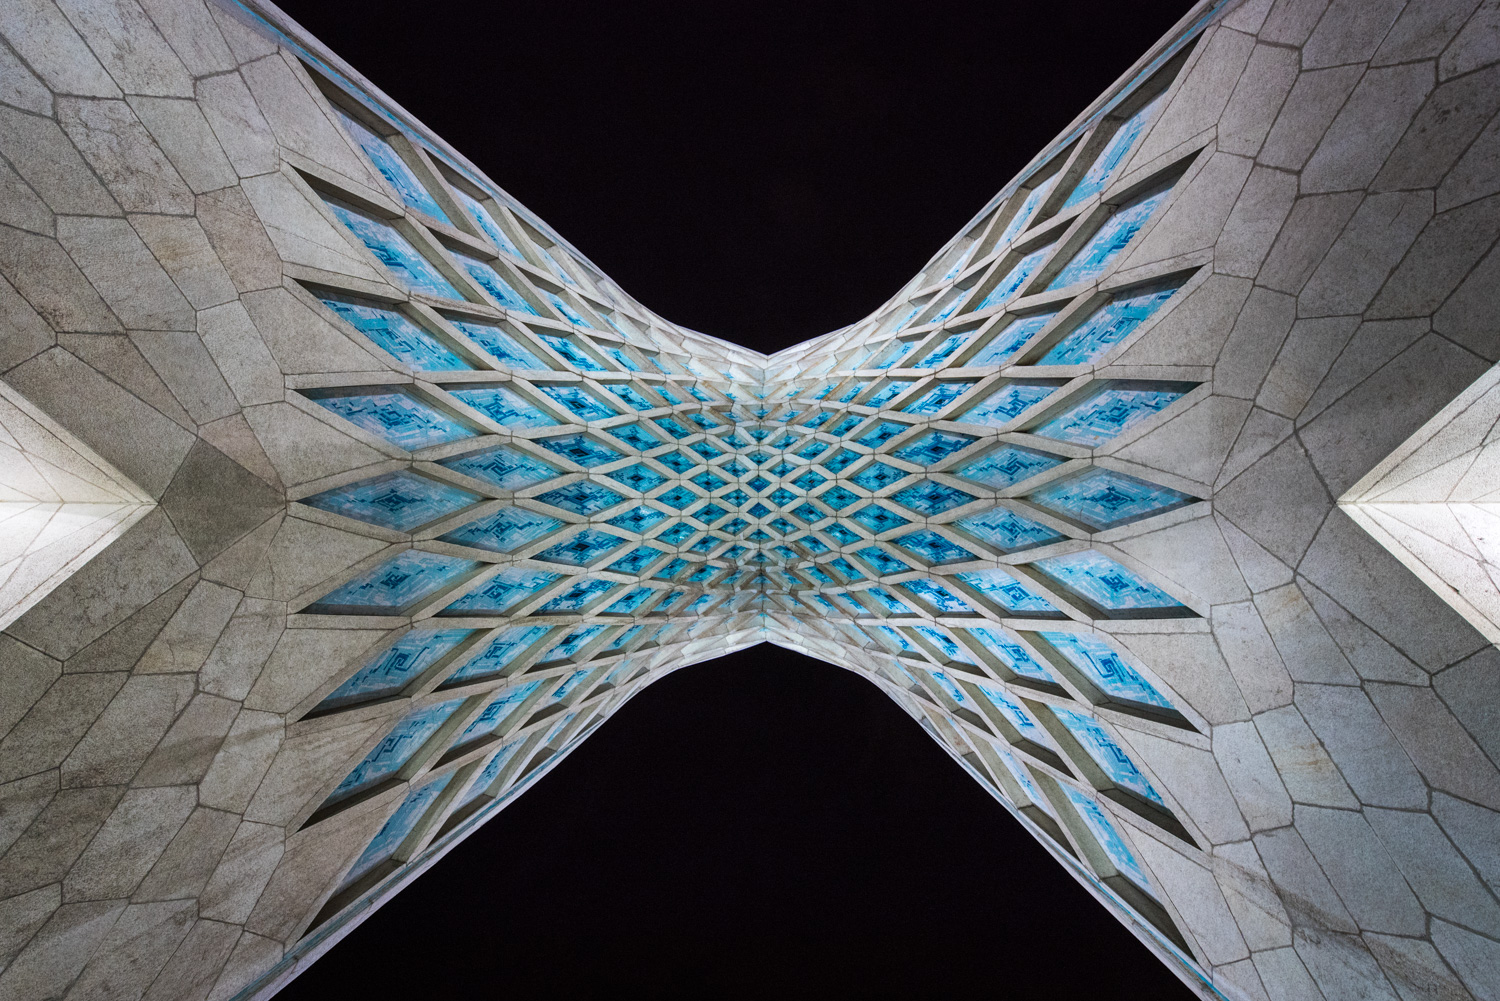 Structures - Azadi Tower